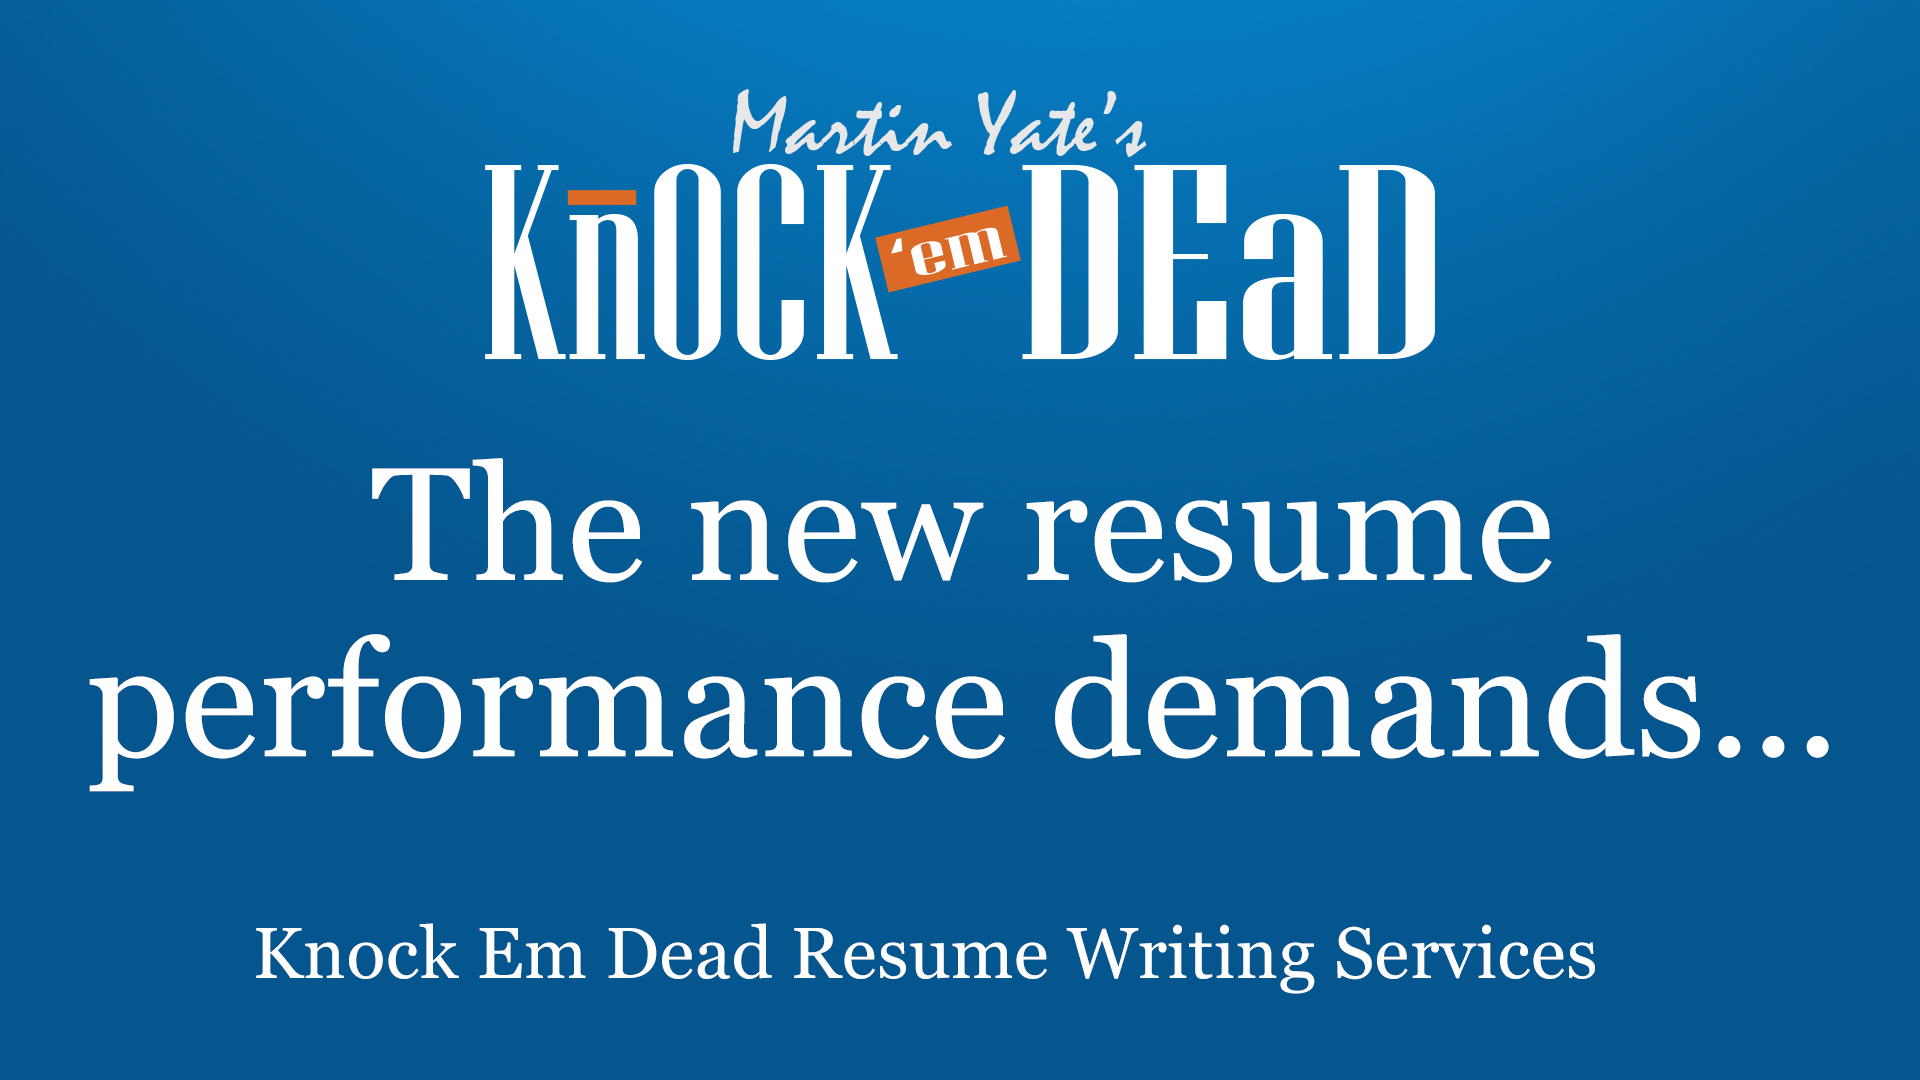 resume Knock Em Dead Resume Templates professional resume writing services workplace fairness career center